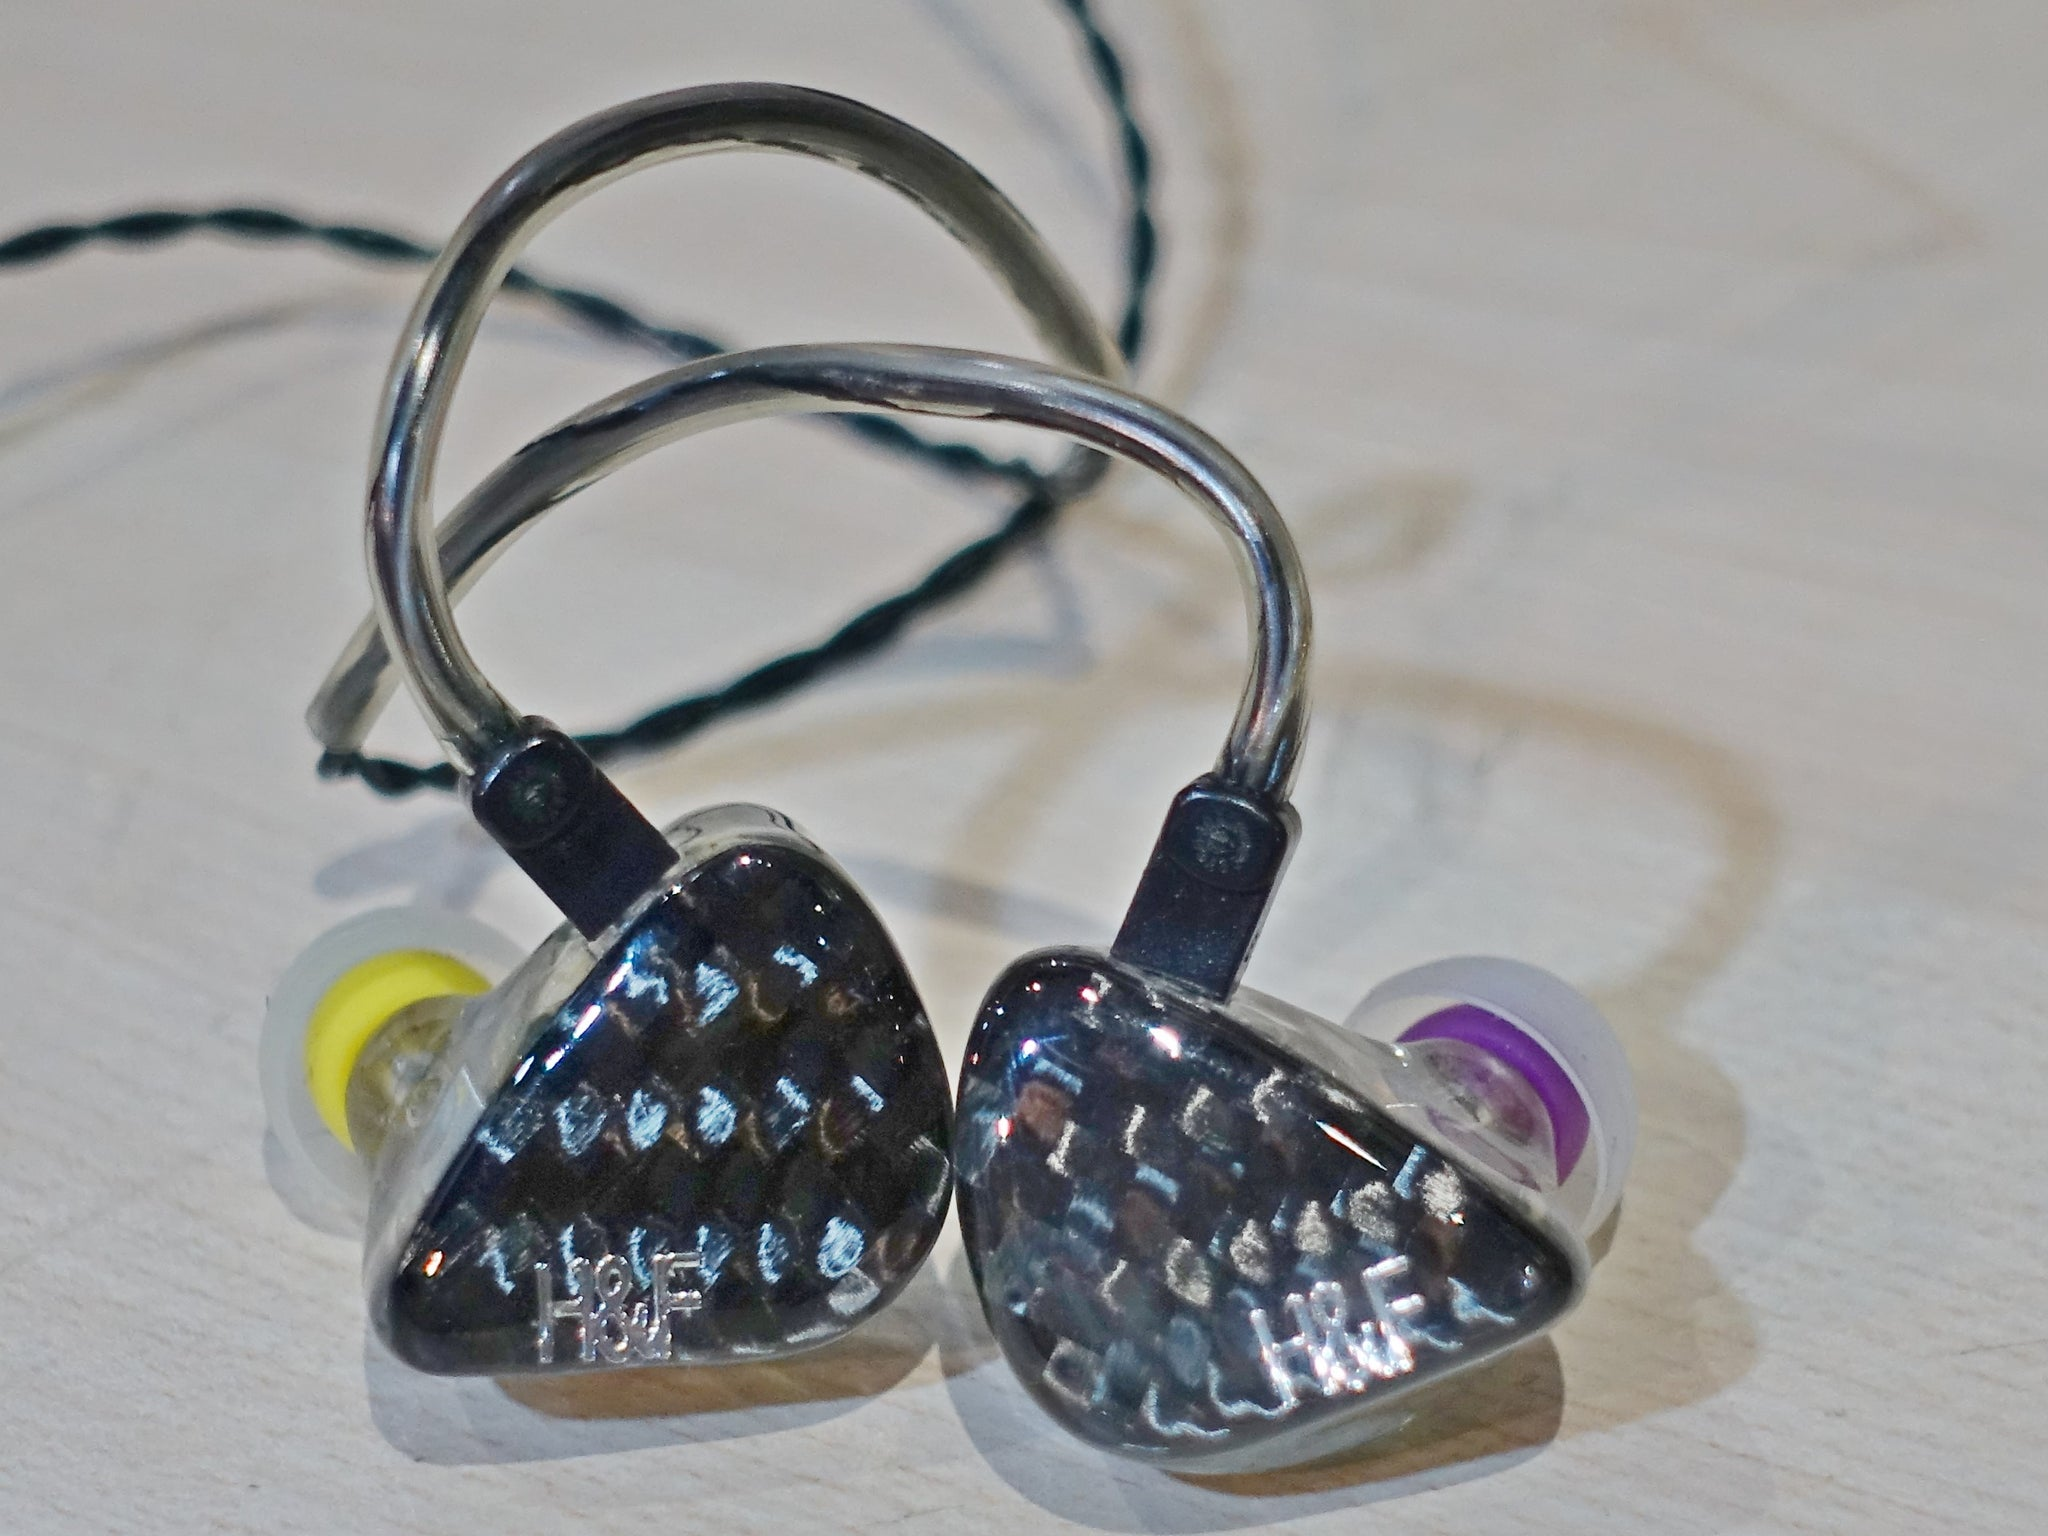 H&F Audio H1s Universal Demo (SS15) - Jaben - The Little Headphone Store